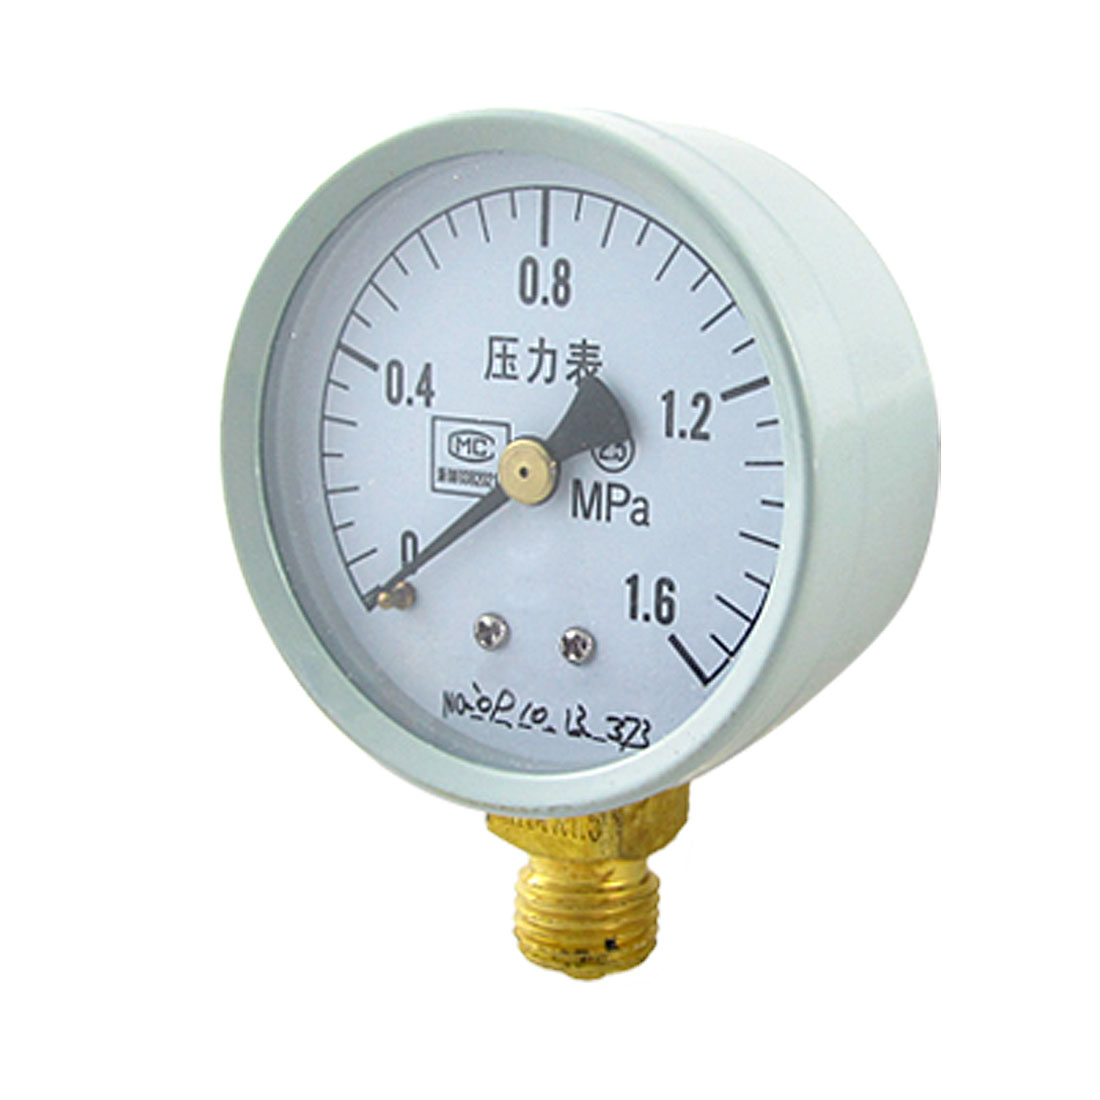 Replacement 0-1.6 Mpa Class Round Water Air Pressure Gauge